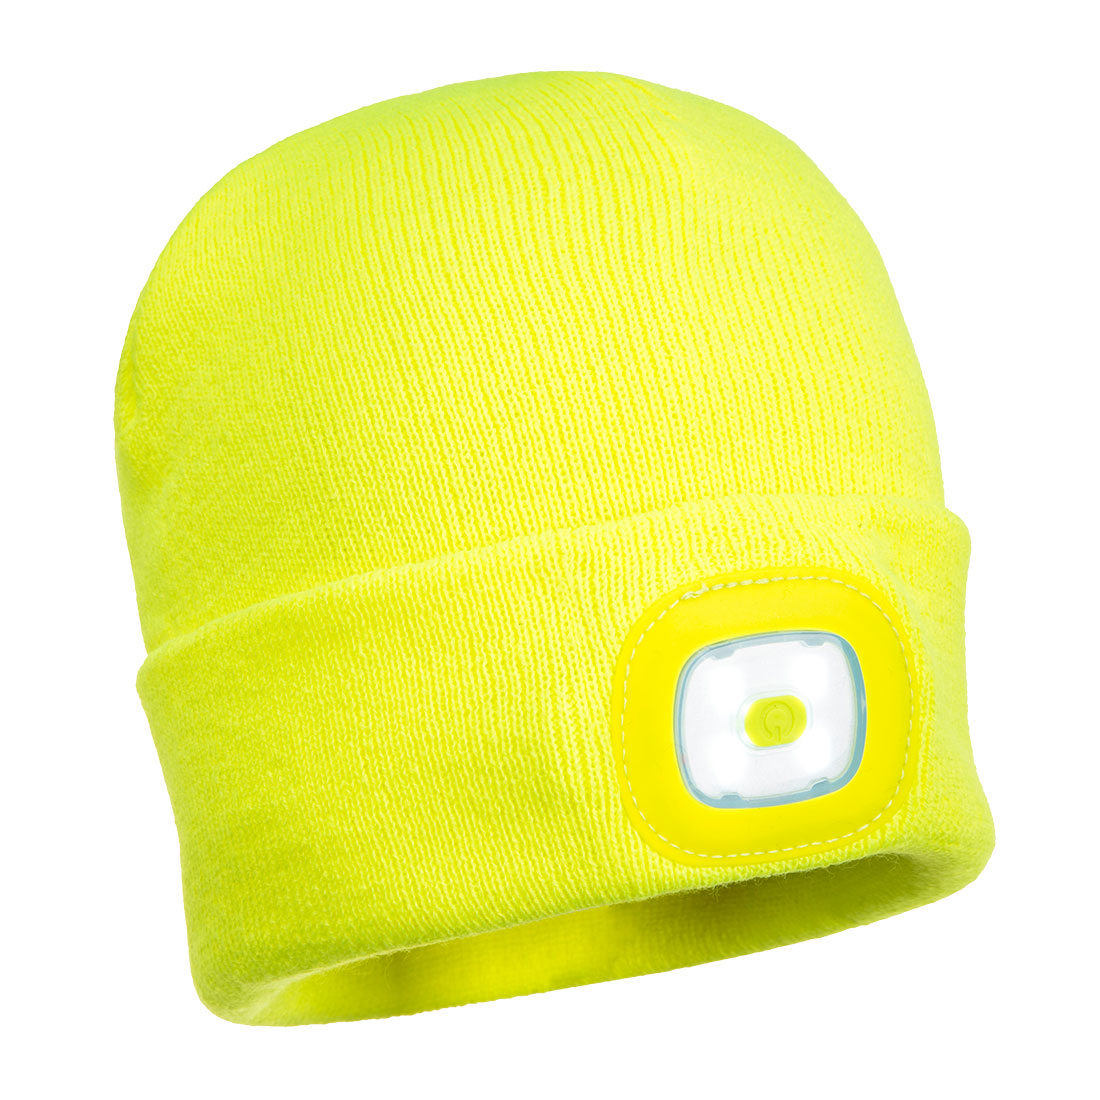 Beanie LED Head Light USB Rechargeable